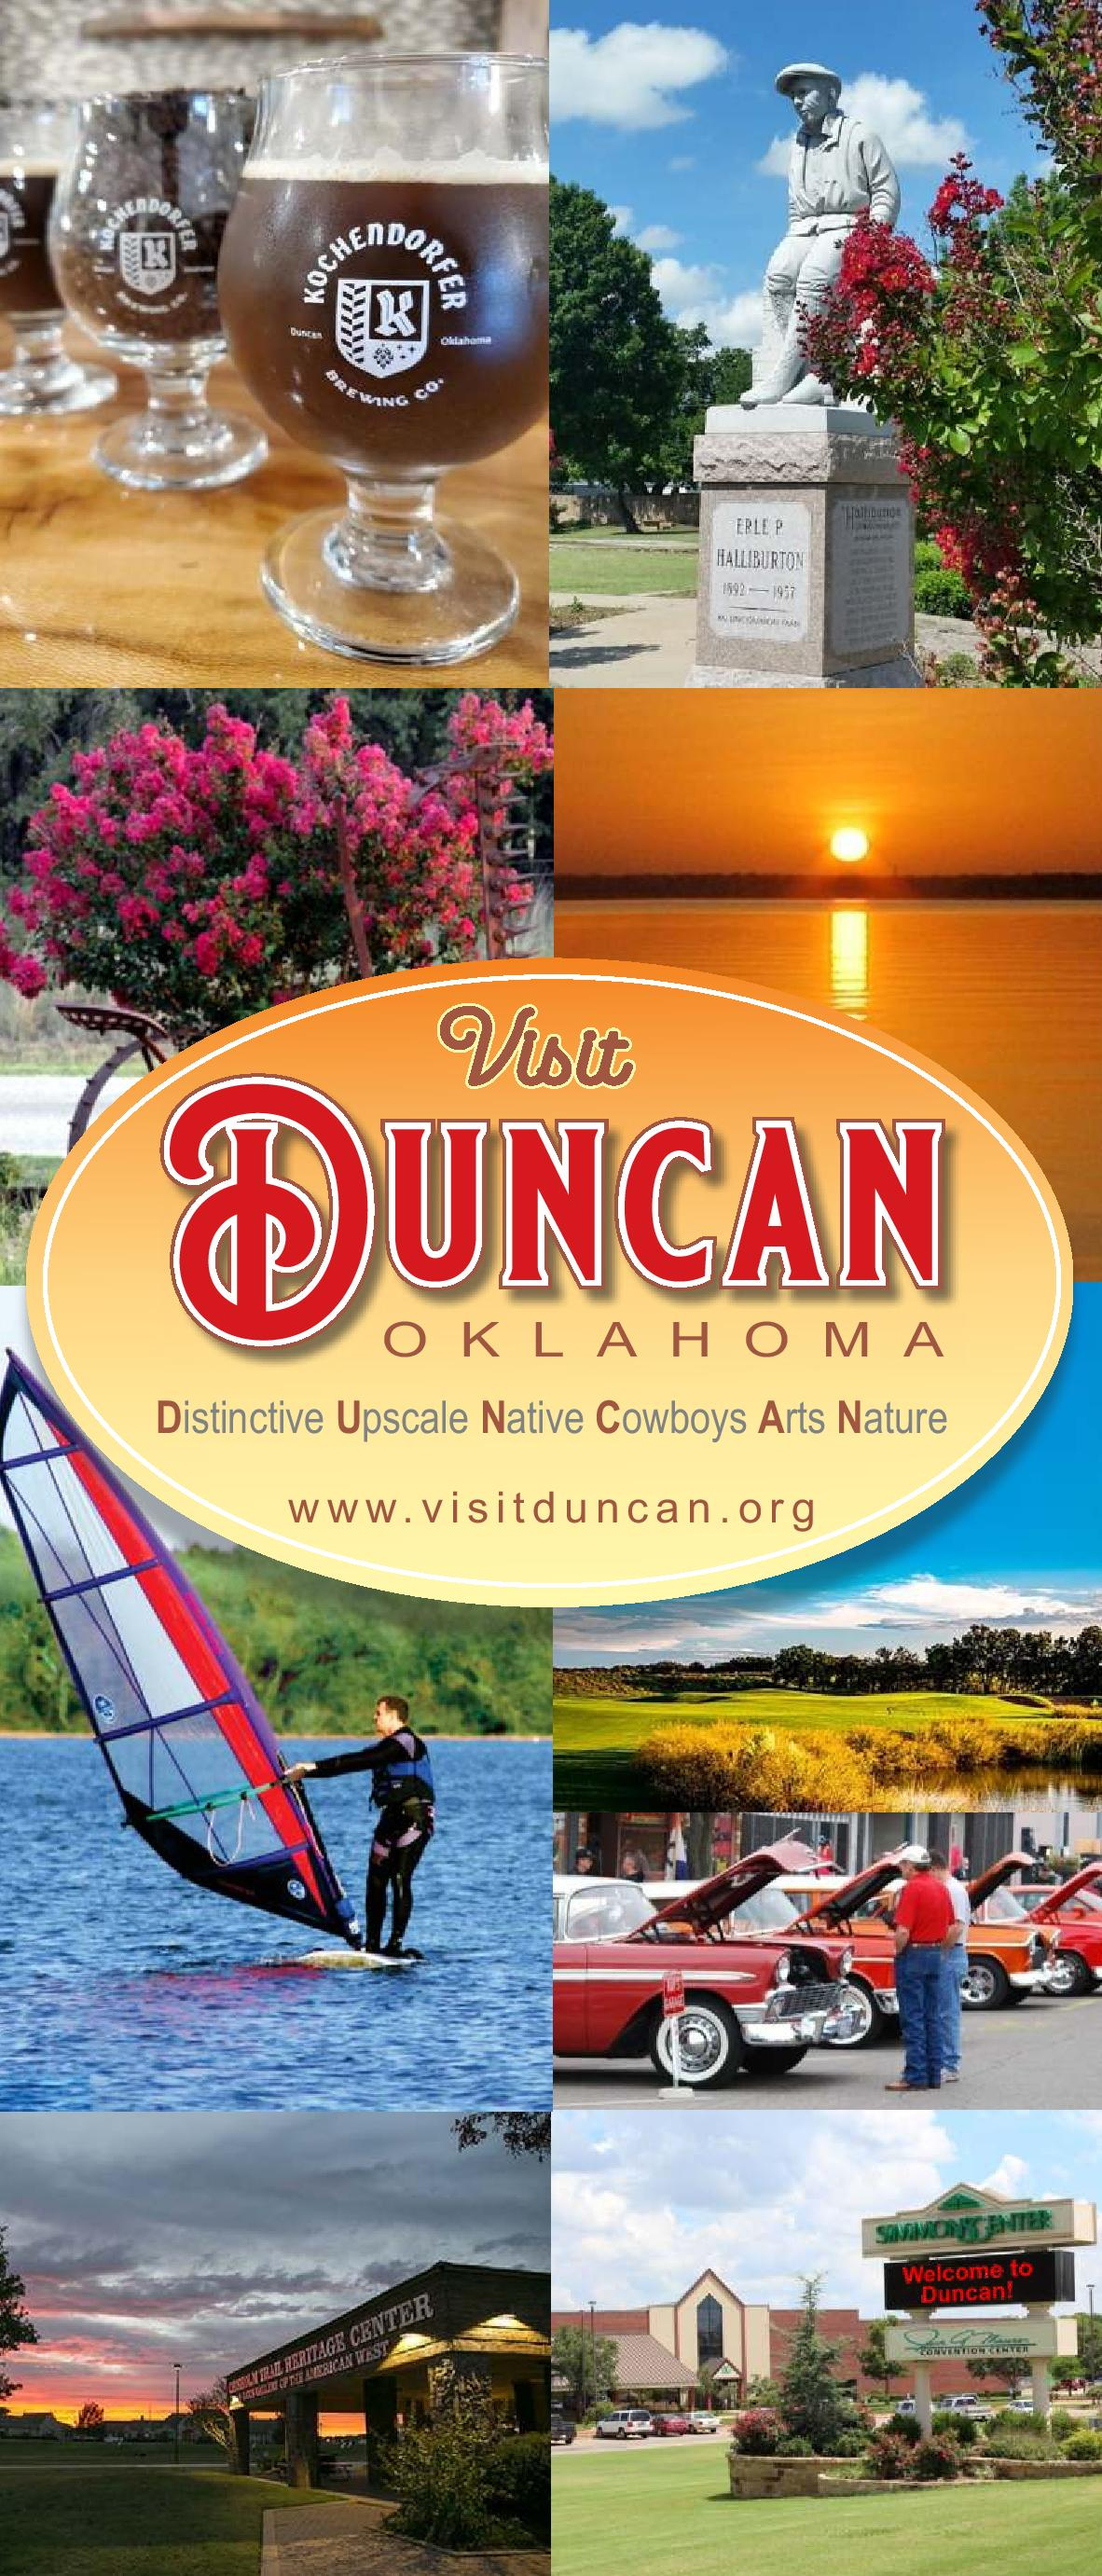 Visit Duncan OK Full Brochure 2019 Cover